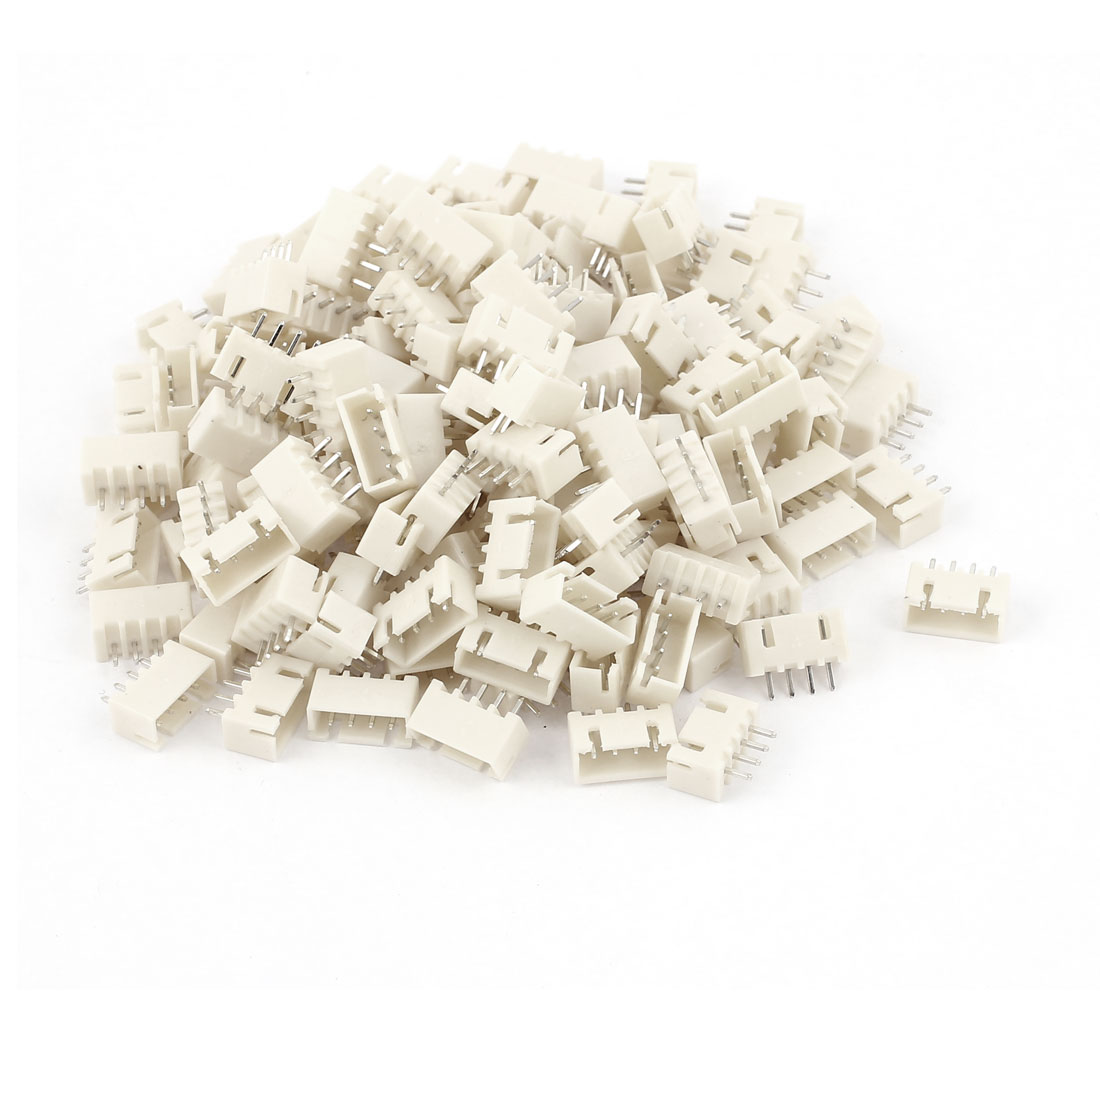 150pcs 2.54mm Pitch Male 4 Pins RC Lipo Battery Balance Connector JST XH Header